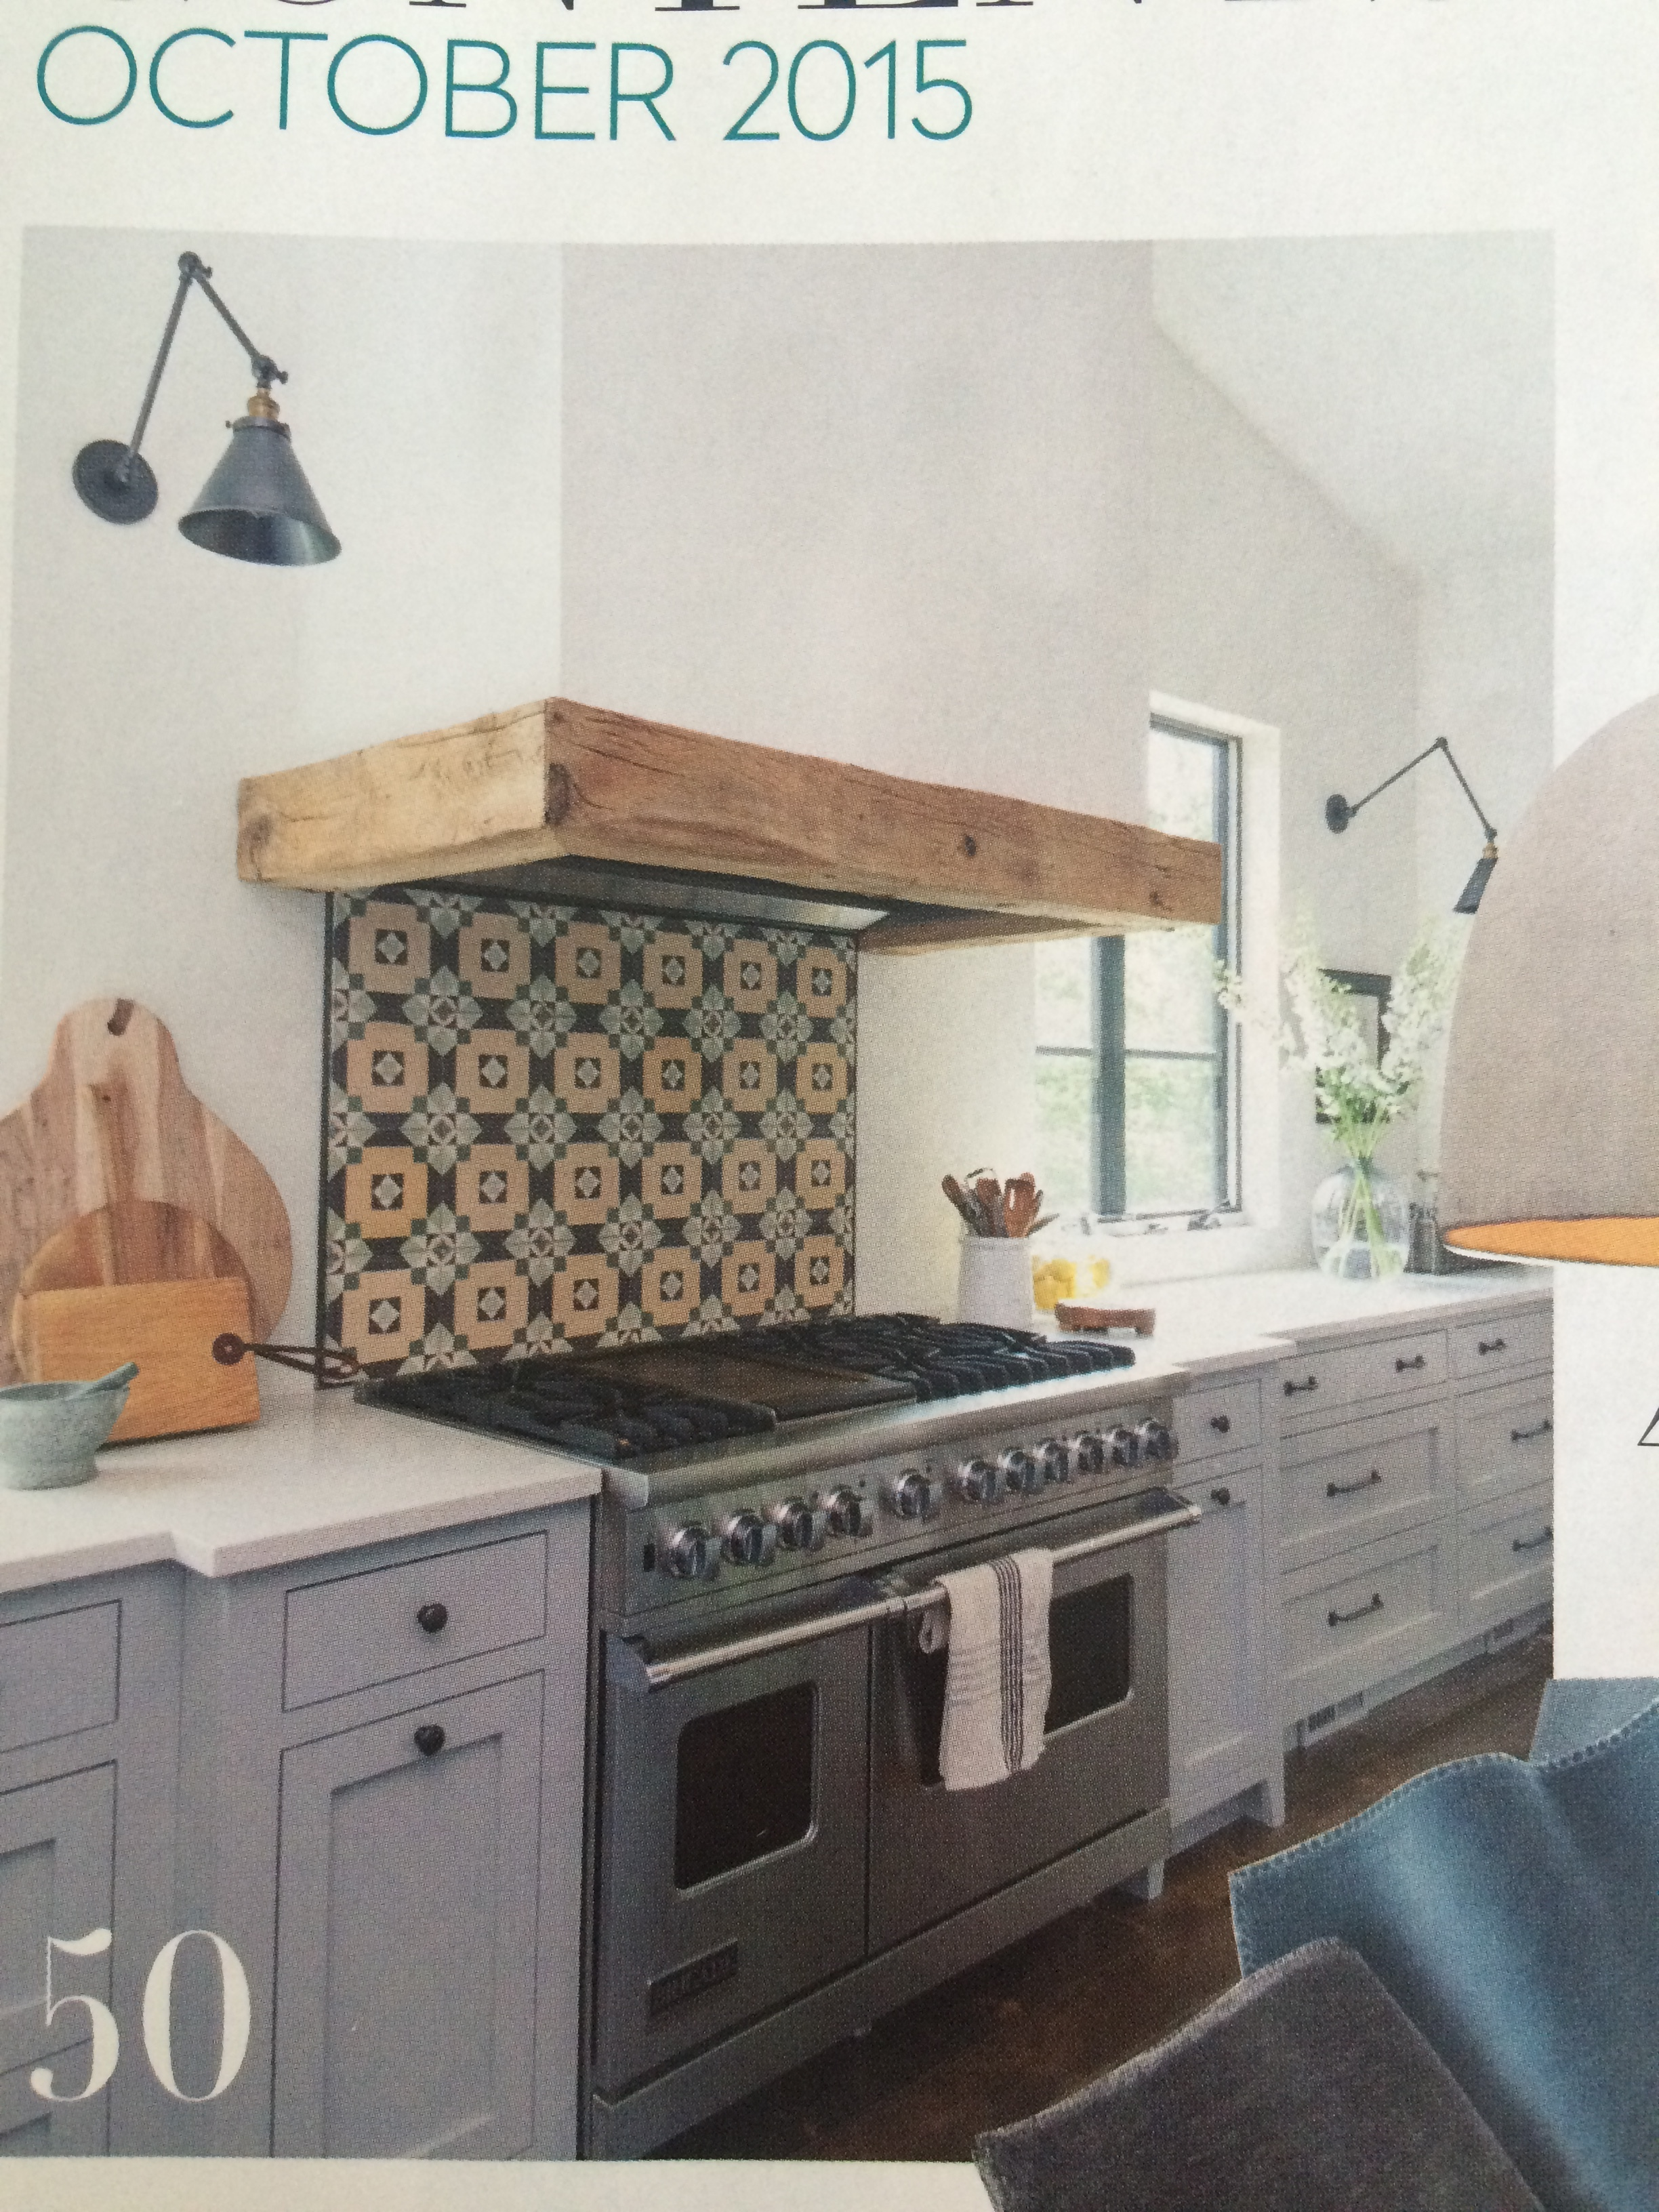 Cement tile Backsplash House & Home Oct 2015